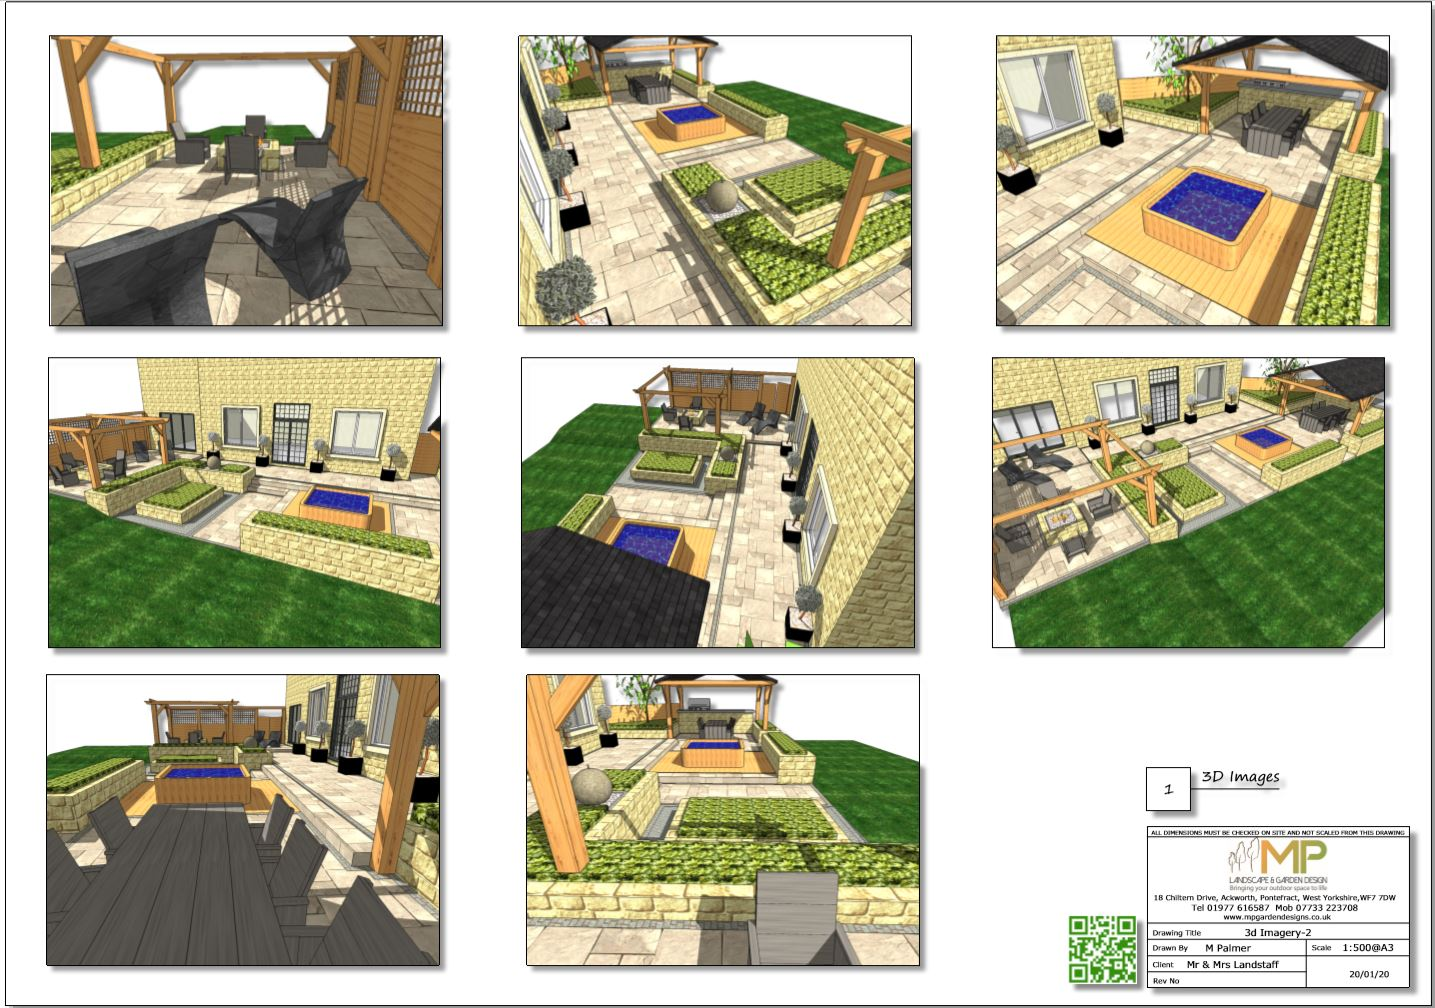 6. Concept plan-2 3D imags for a rear patio area in Wakefield